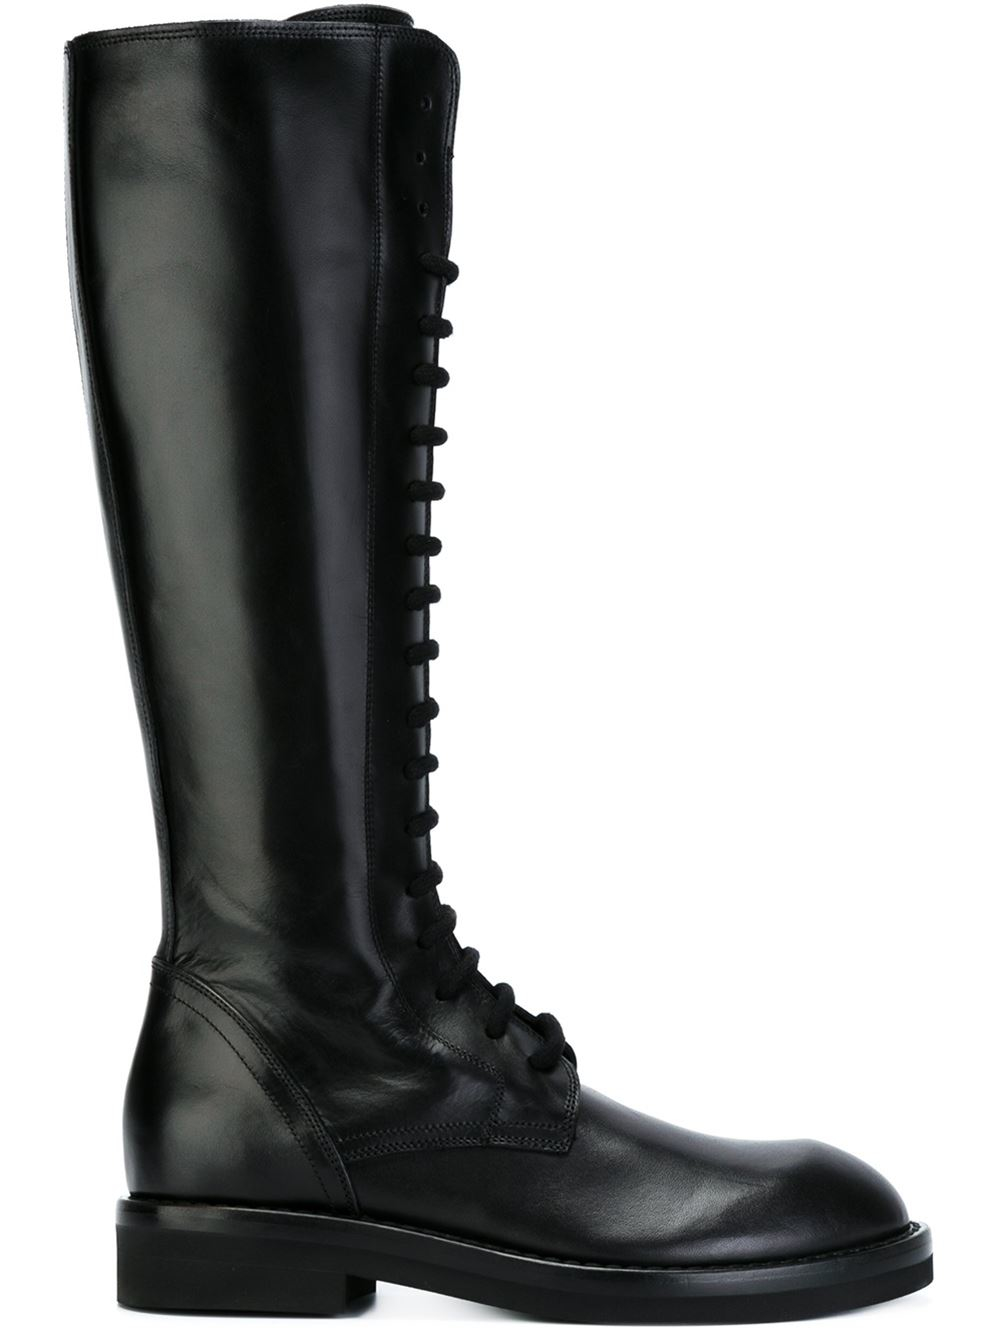 Ann Demeulemeester Black Tall Lace-Up Boots 1T2rLOnXkK